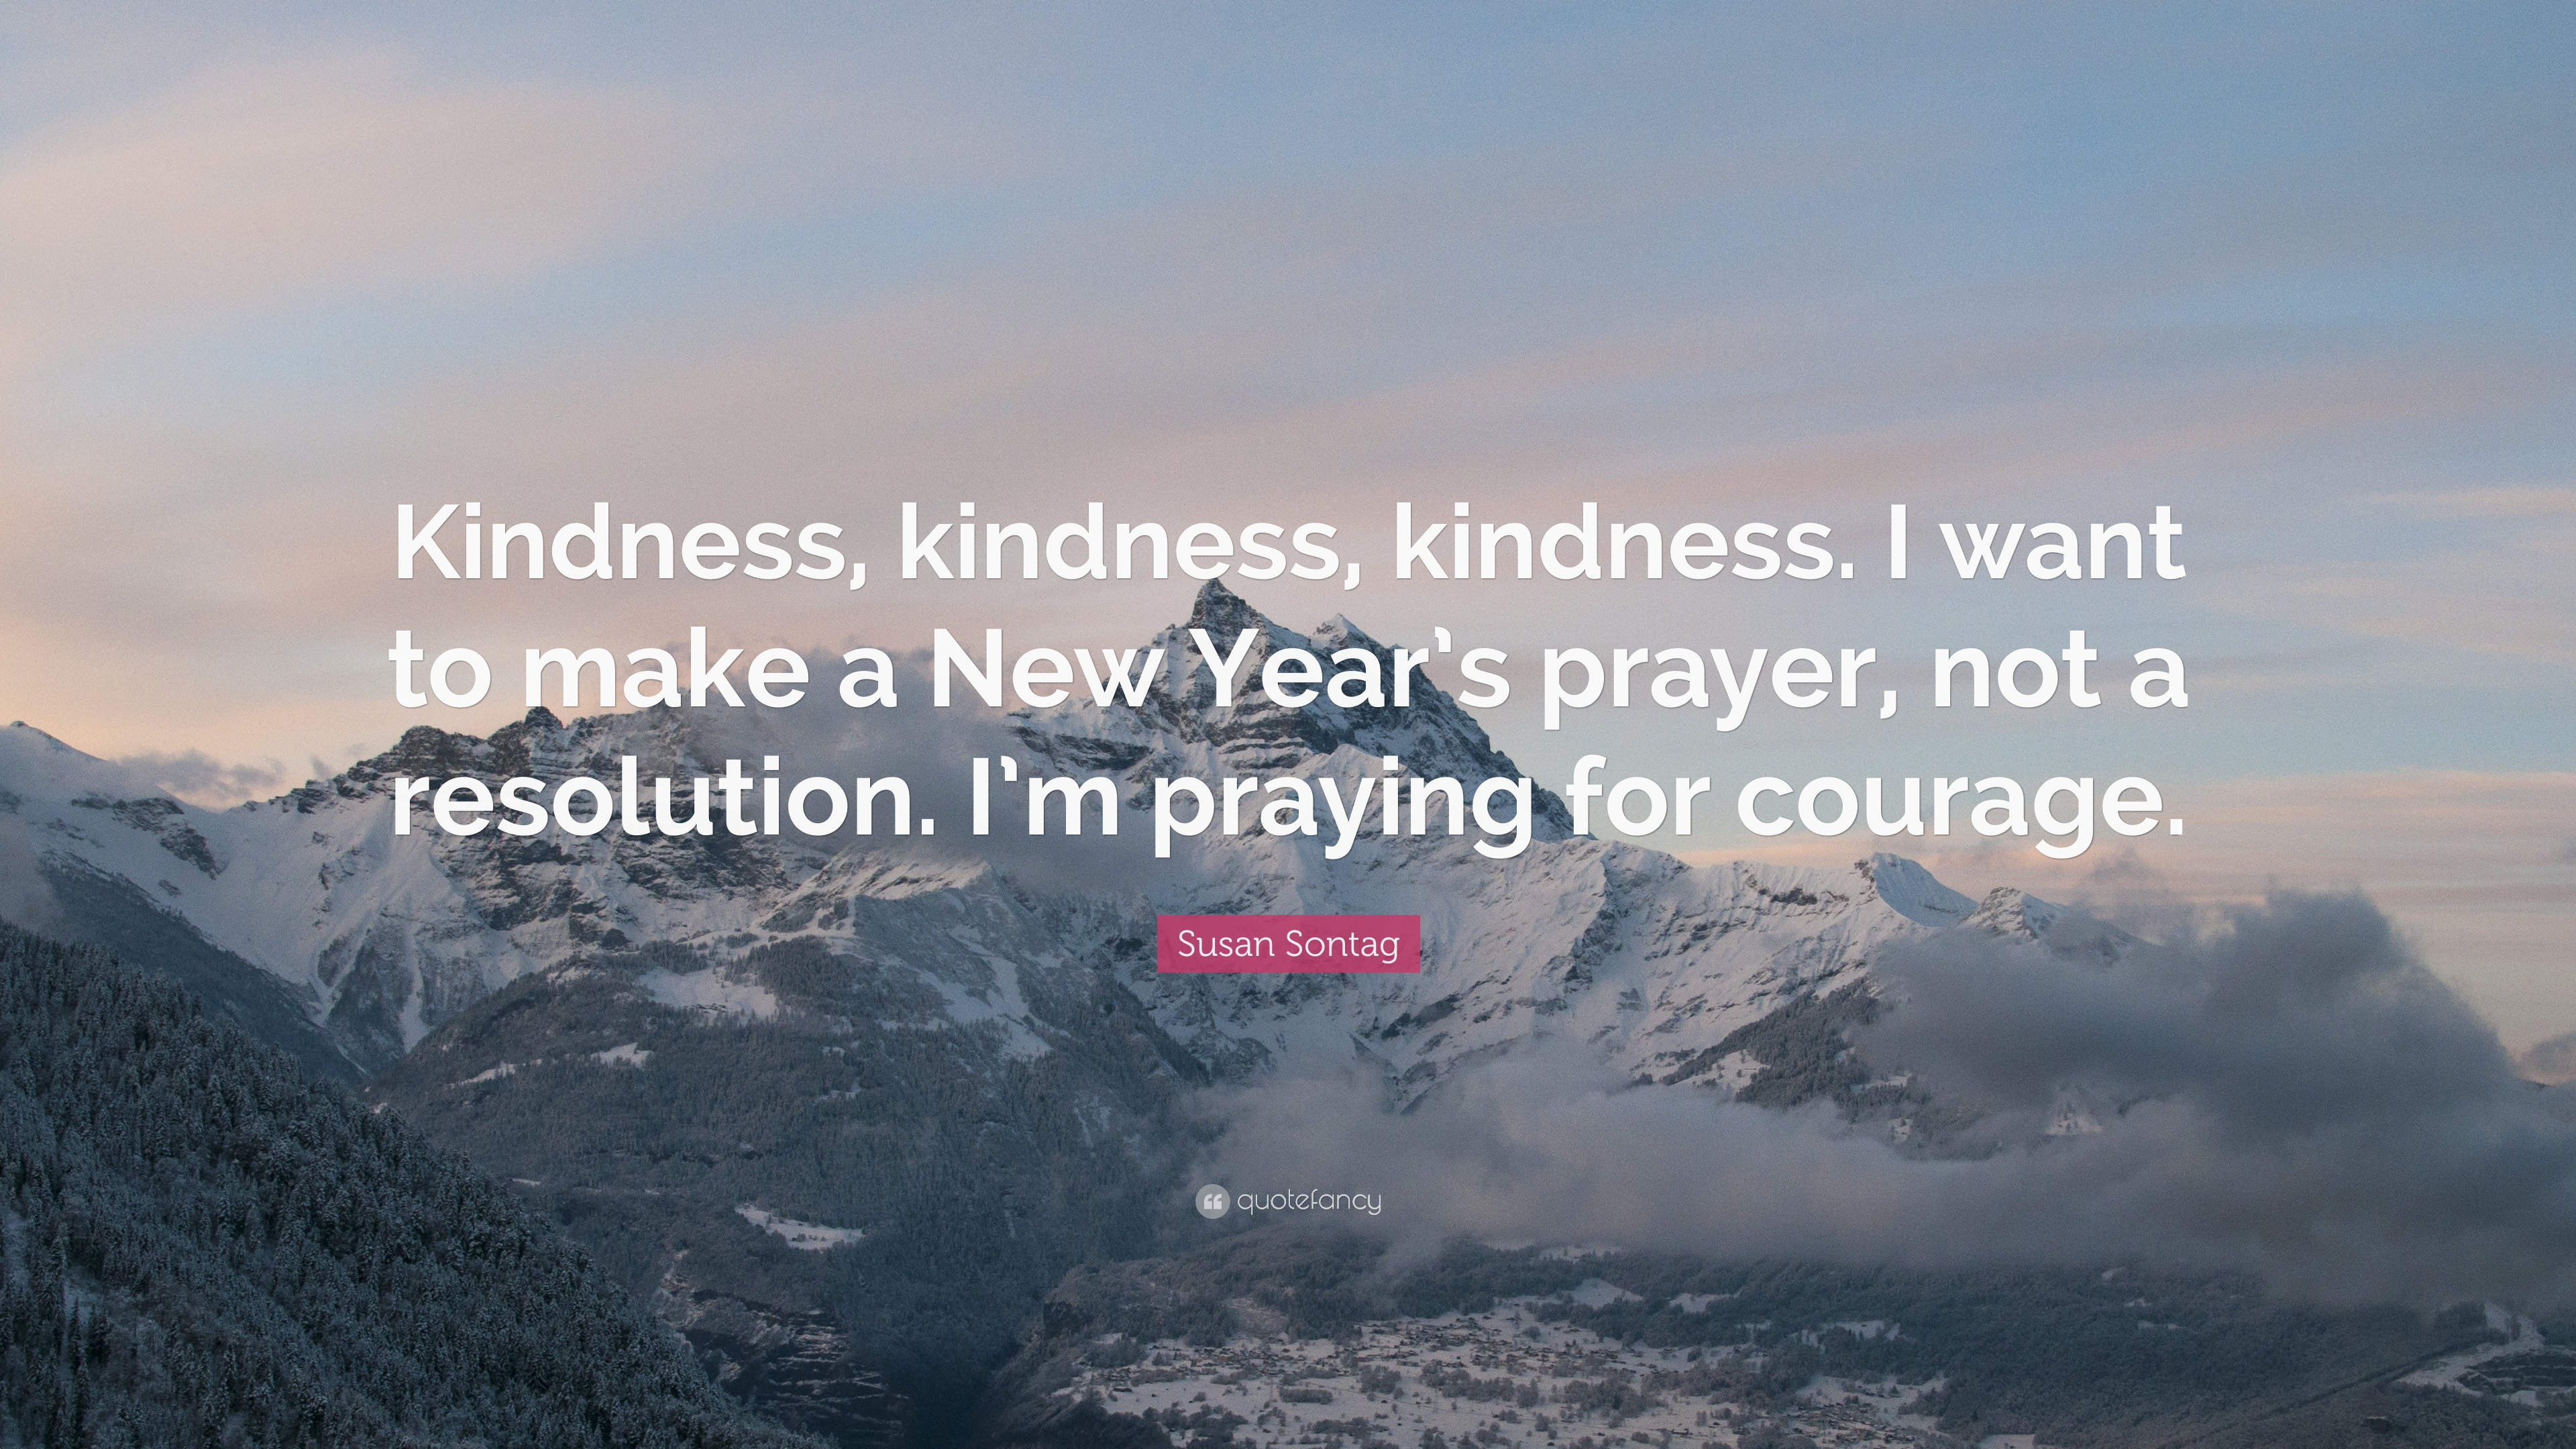 susan sontag quote kindness kindness kindness i want to make a